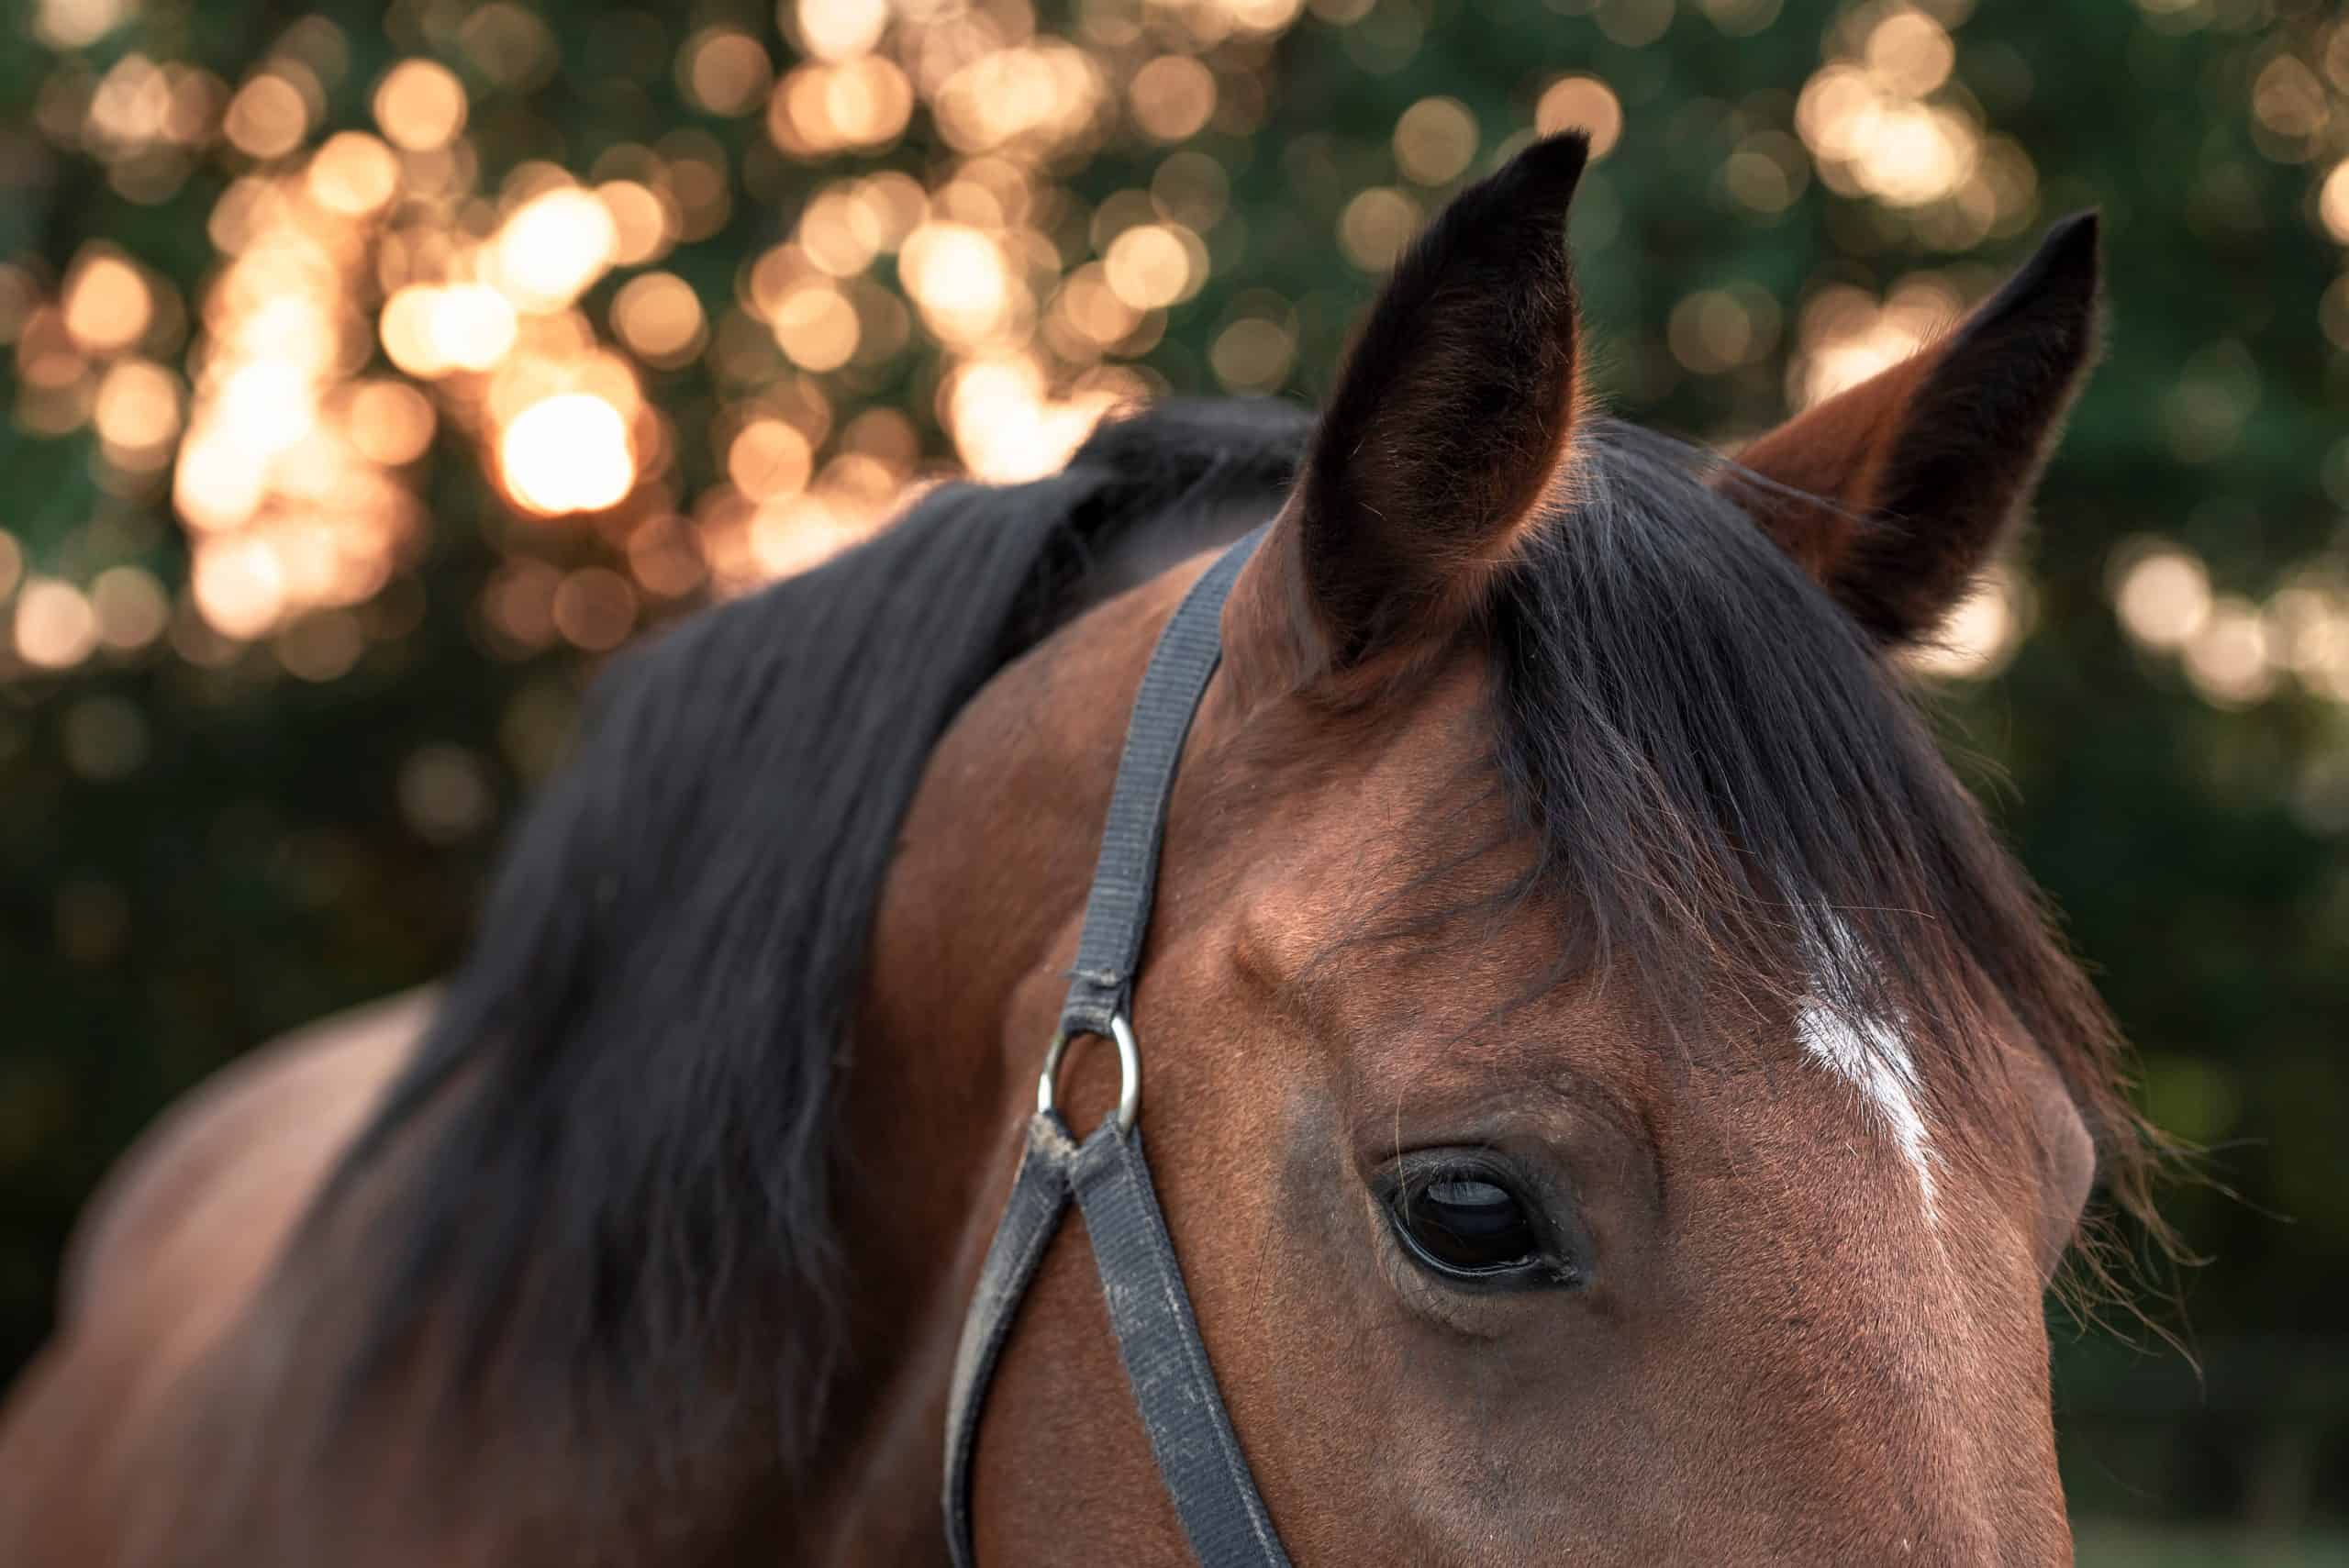 Portrait of a dark brown horse with a white spot on forehead, looking down with sad eyes, an image with selective focus in the morning light.